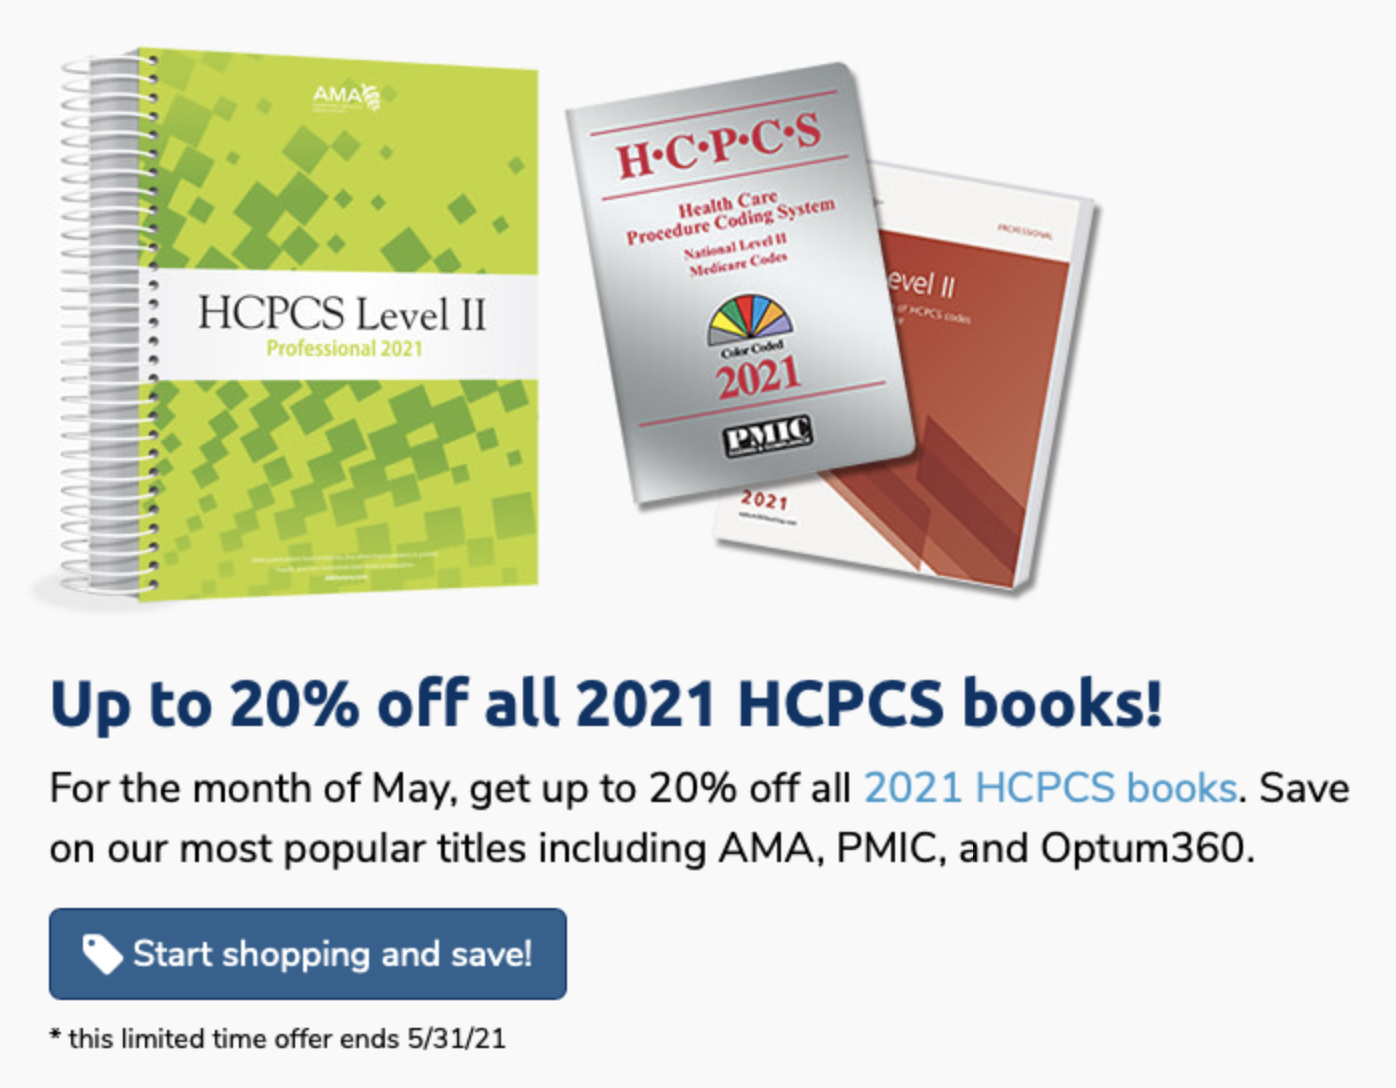 Up to 20% HCPCS 2021 Books — May 2021 Sale